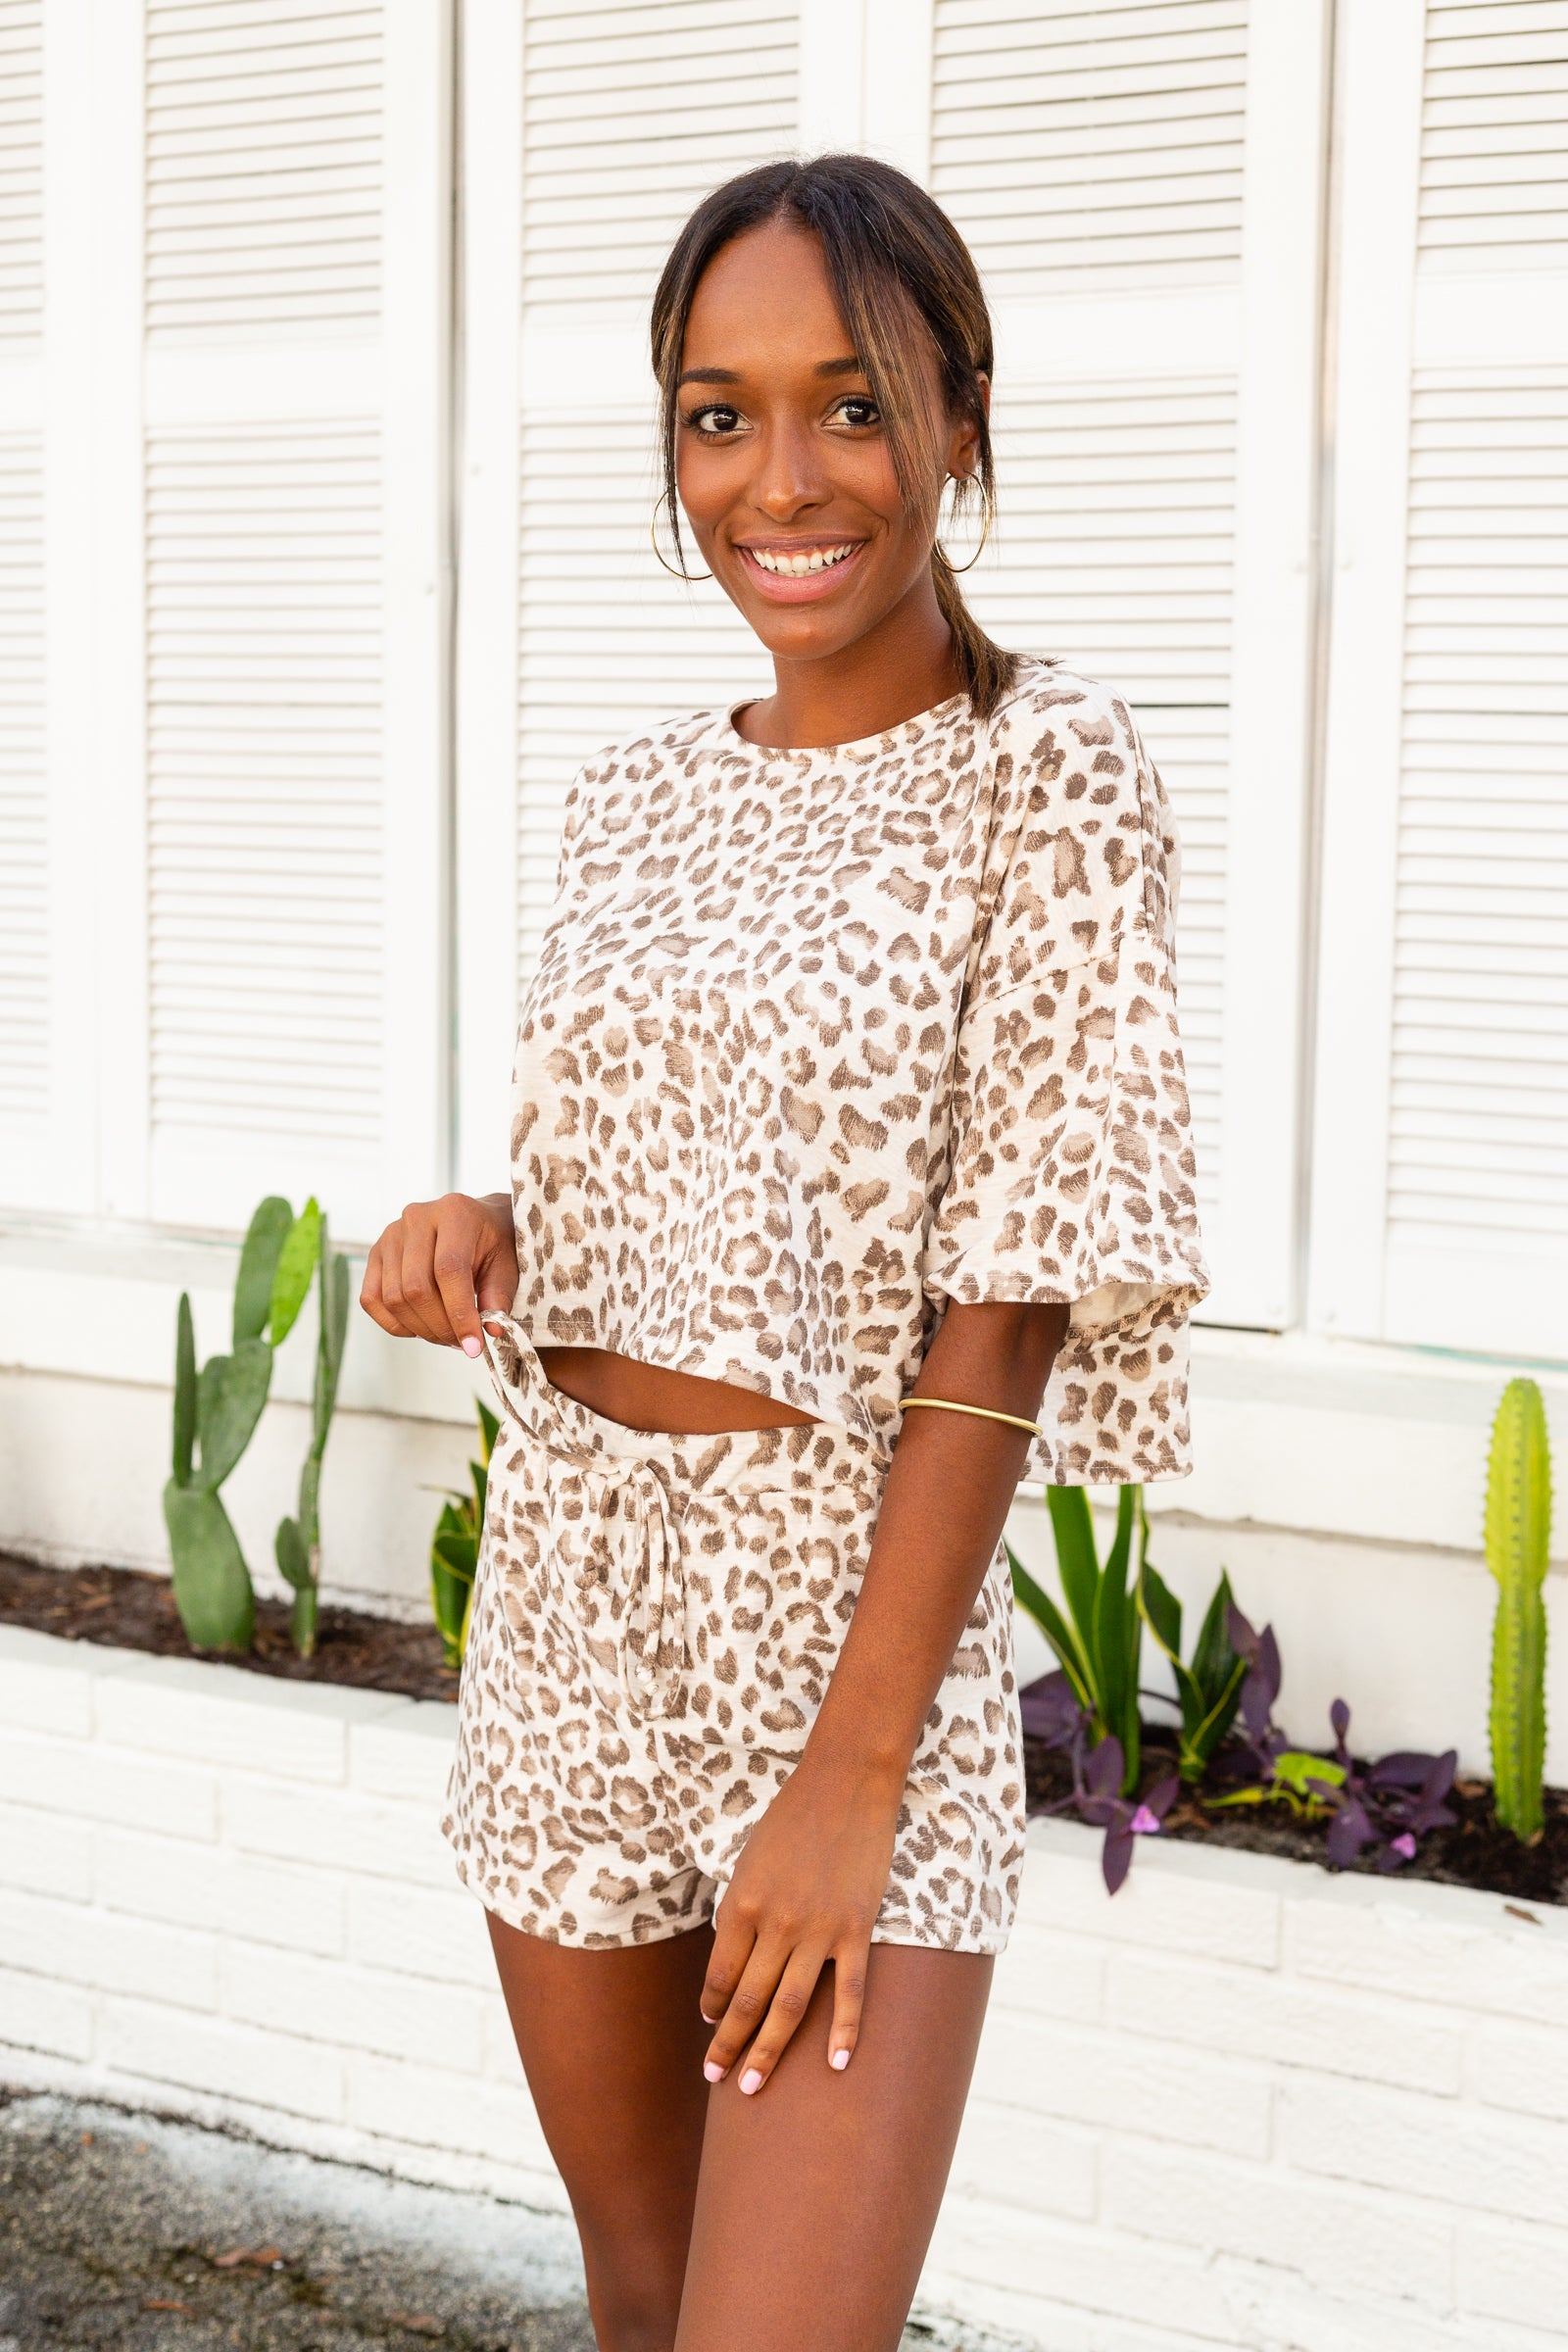 Light leopard spots speckle the fabric of the easy-to-wear lounge top. Short sleeves attach to a banded u-neckline on a comfortable and cropped t-shirt bodice silhouette.